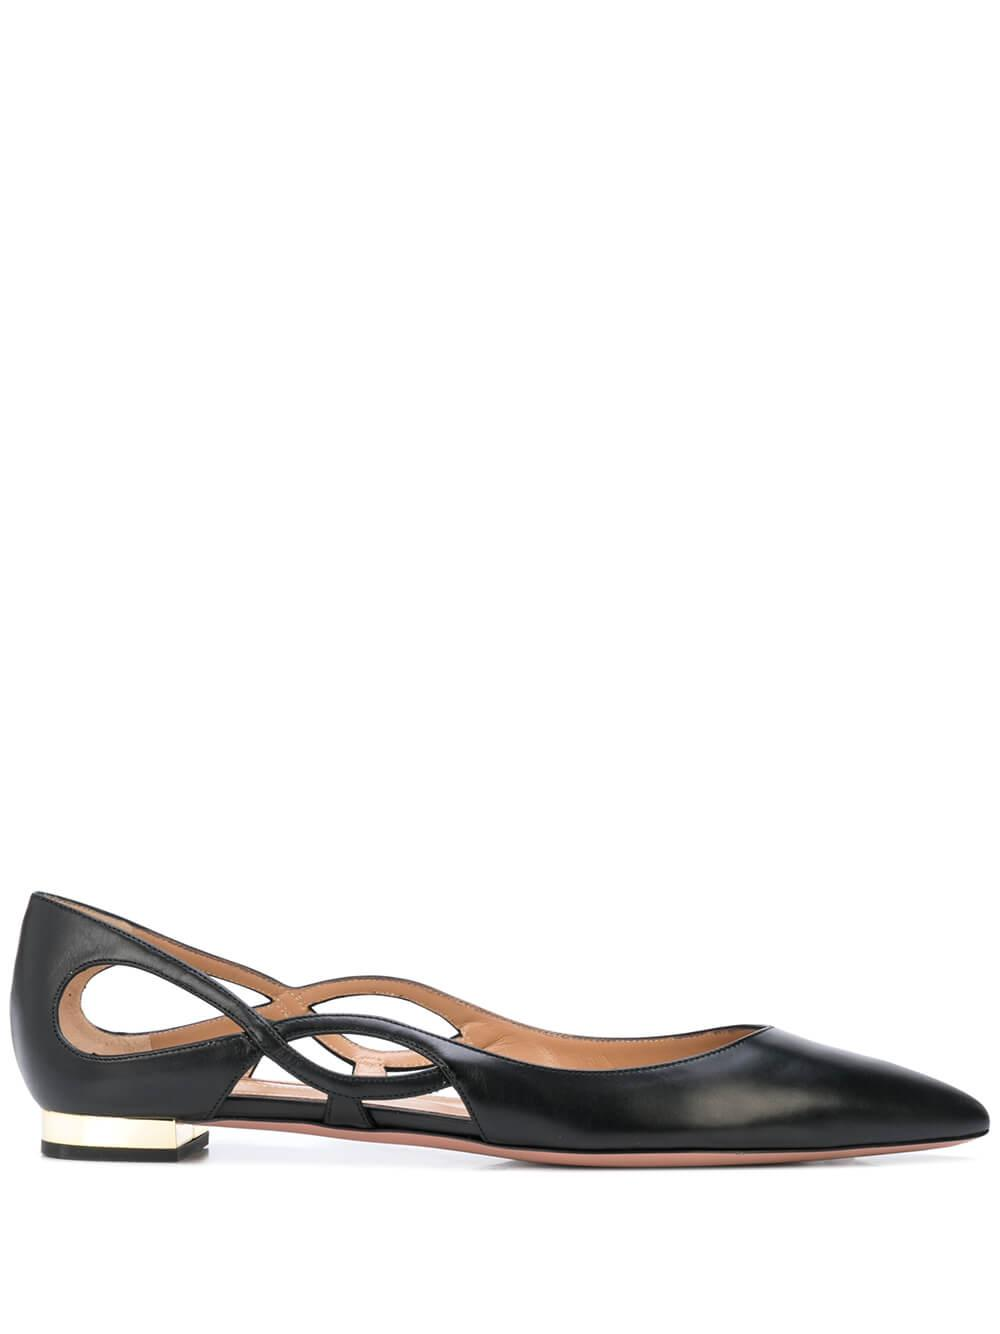 Forever Leather Ballet Flat With Cutouts Item # FOVFLAB0-CAL